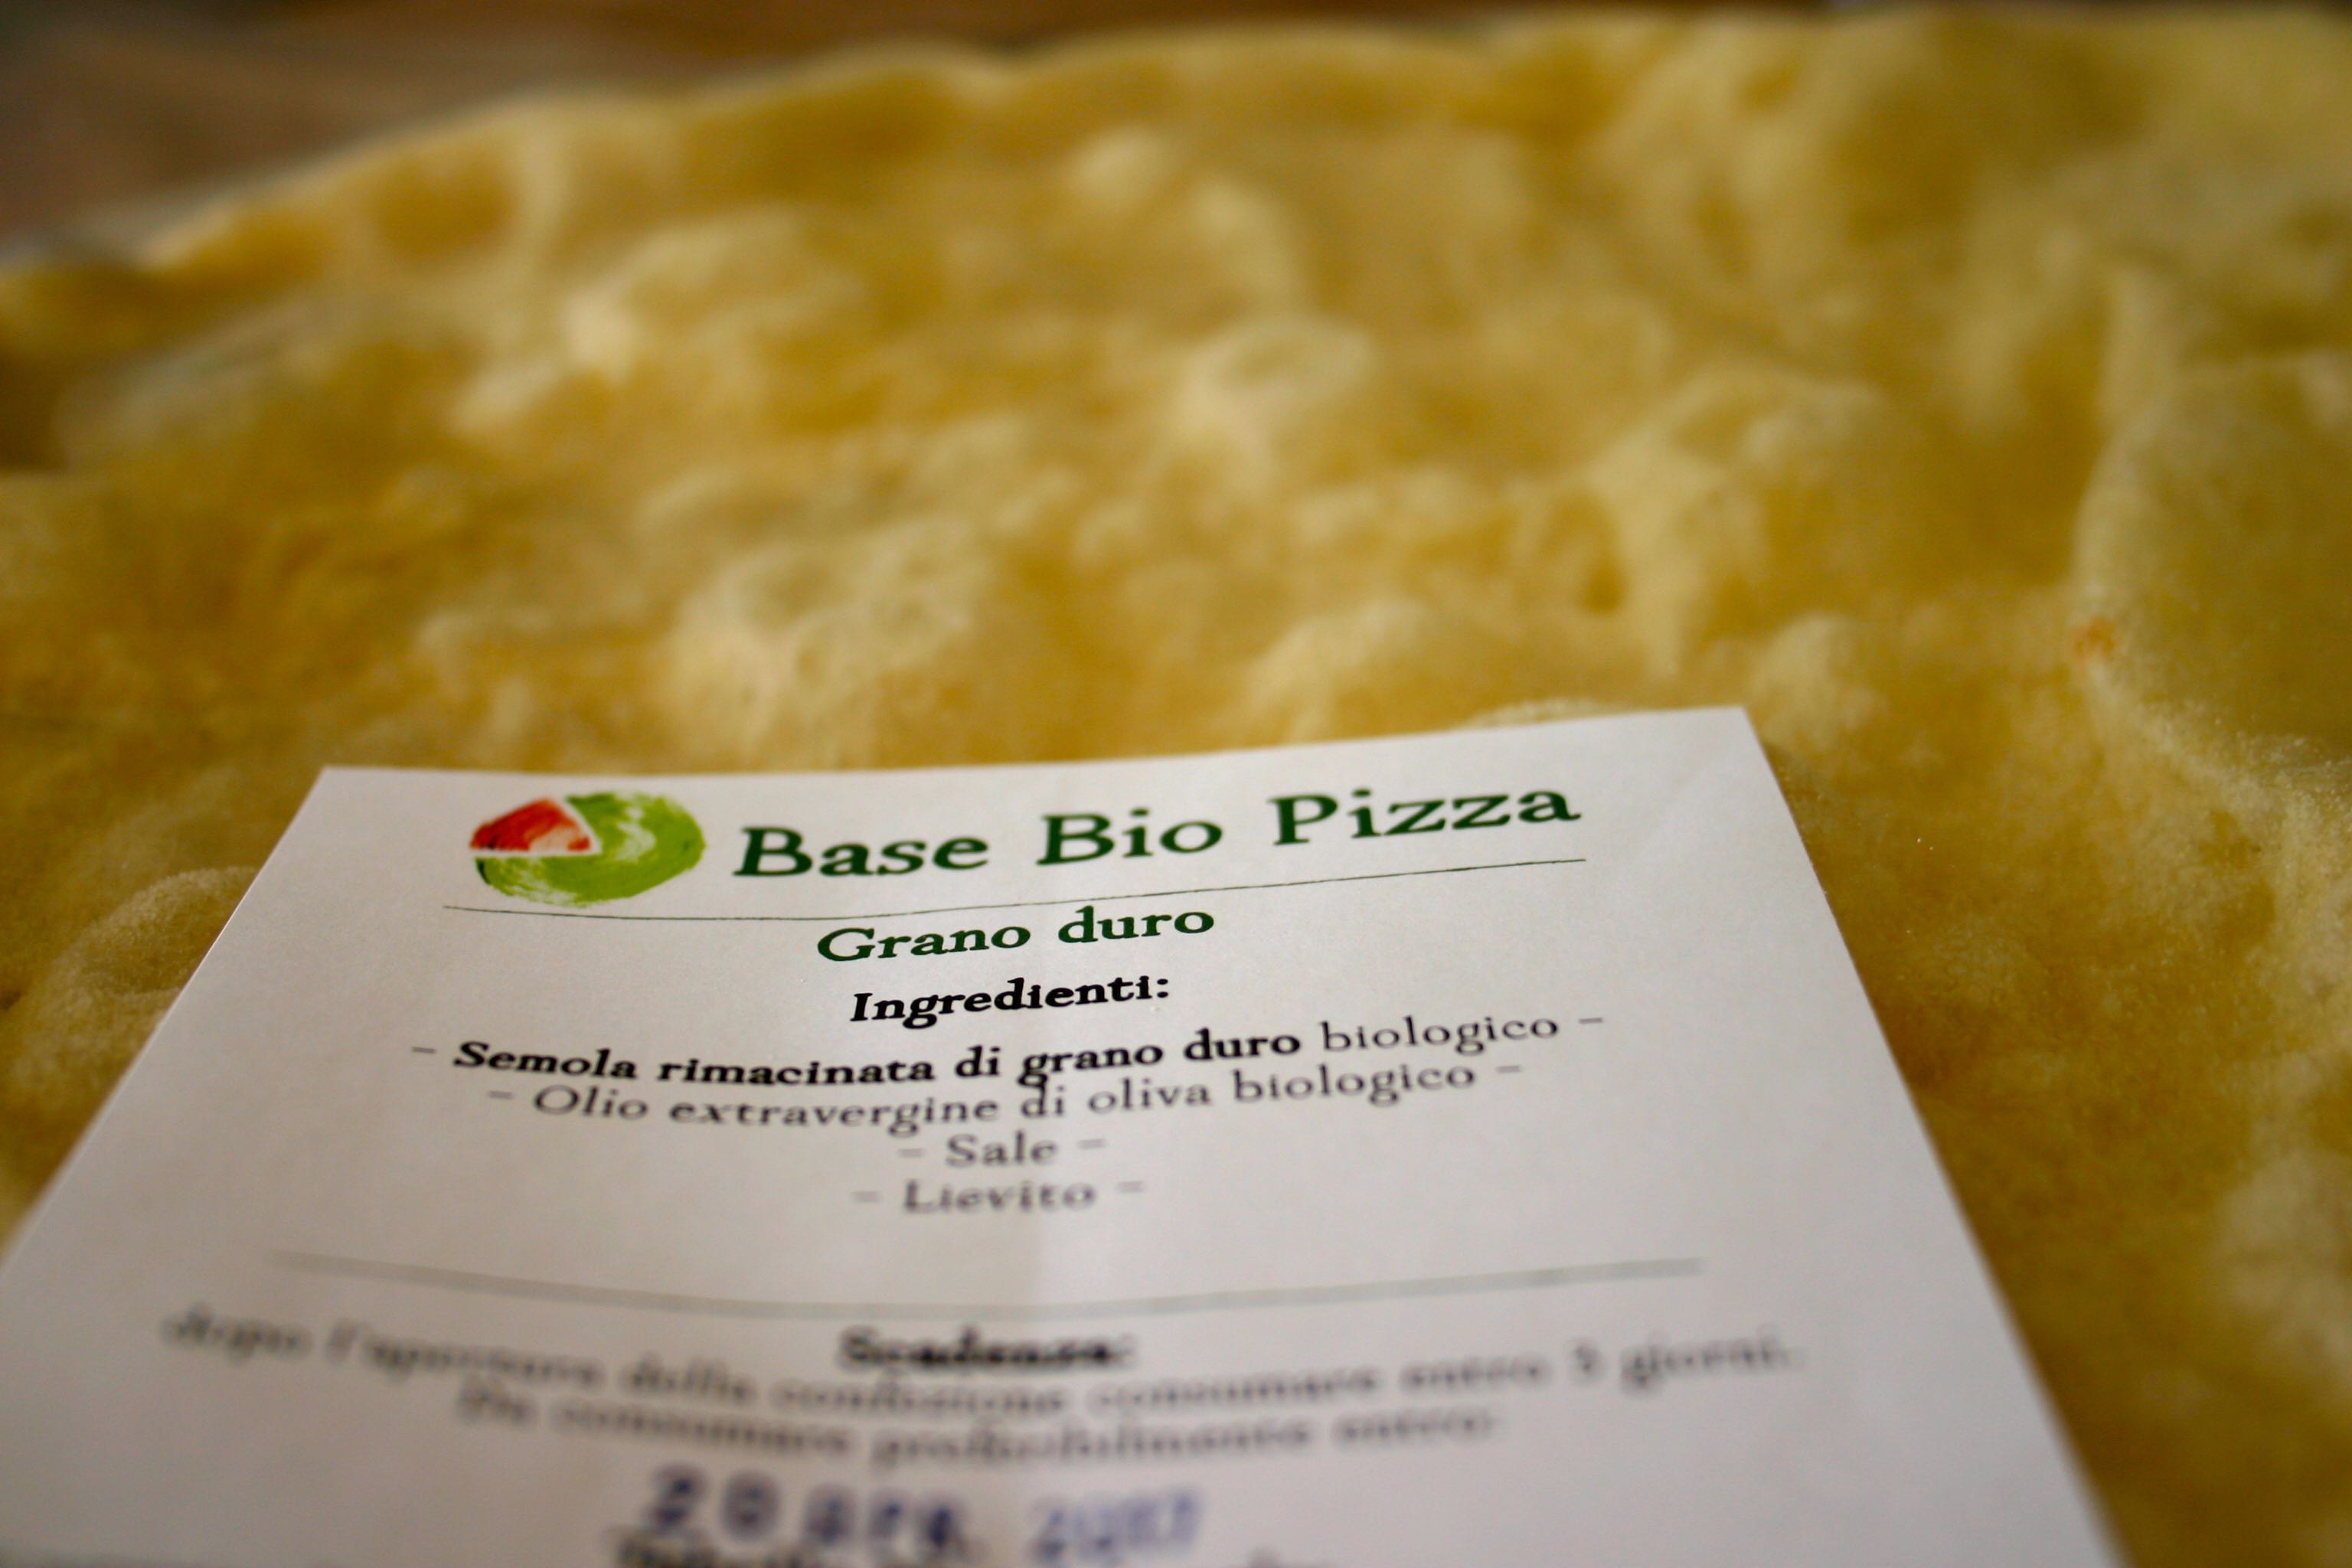 Base bio pizza